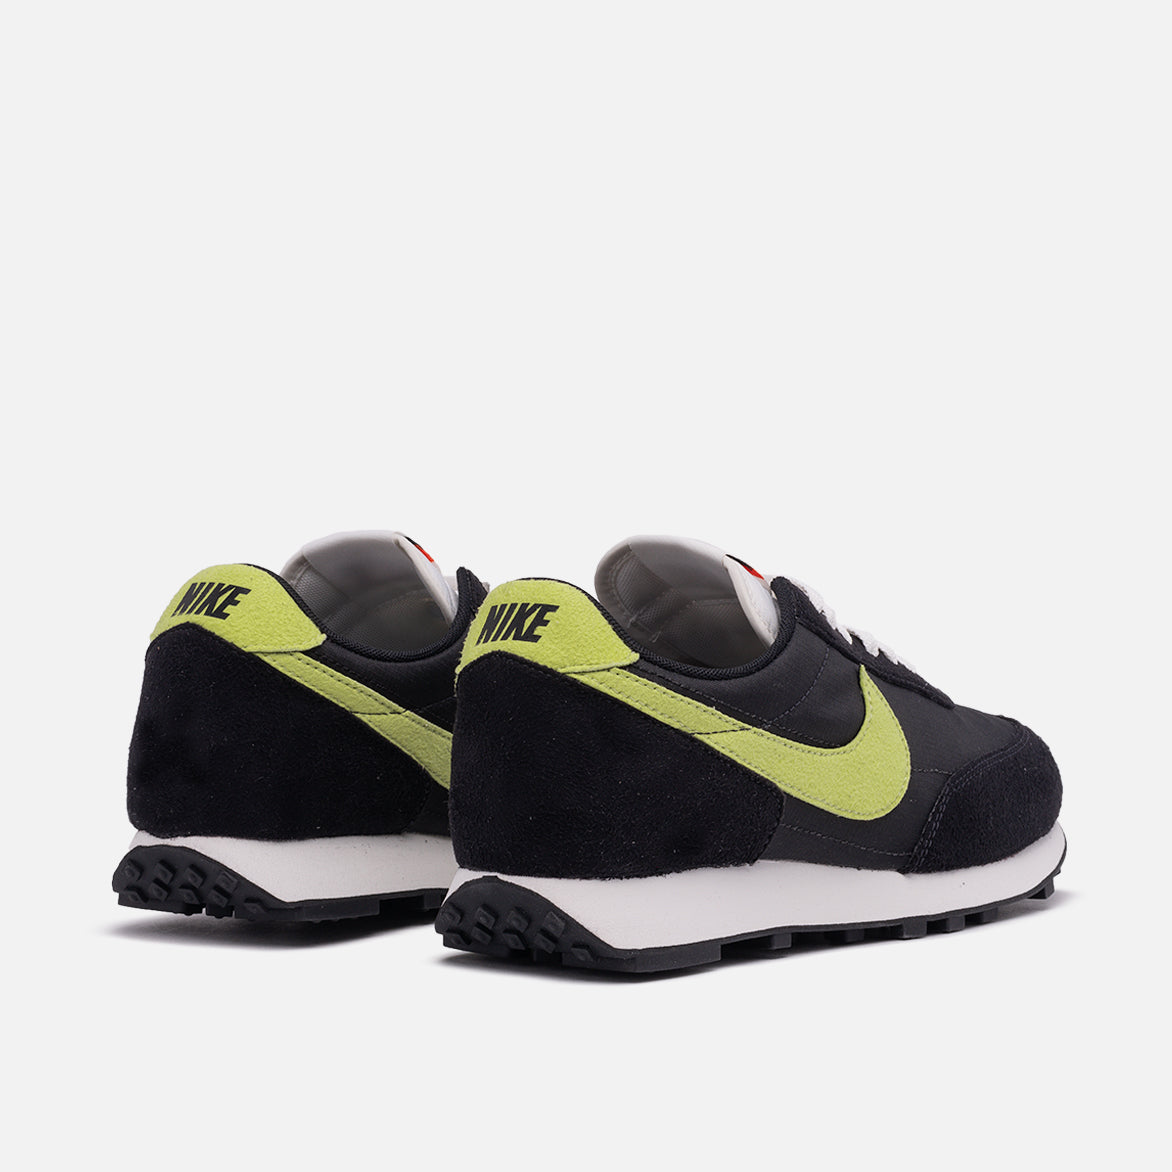 "NIKE DAYBREAK SP ""LIMELIGHT"""